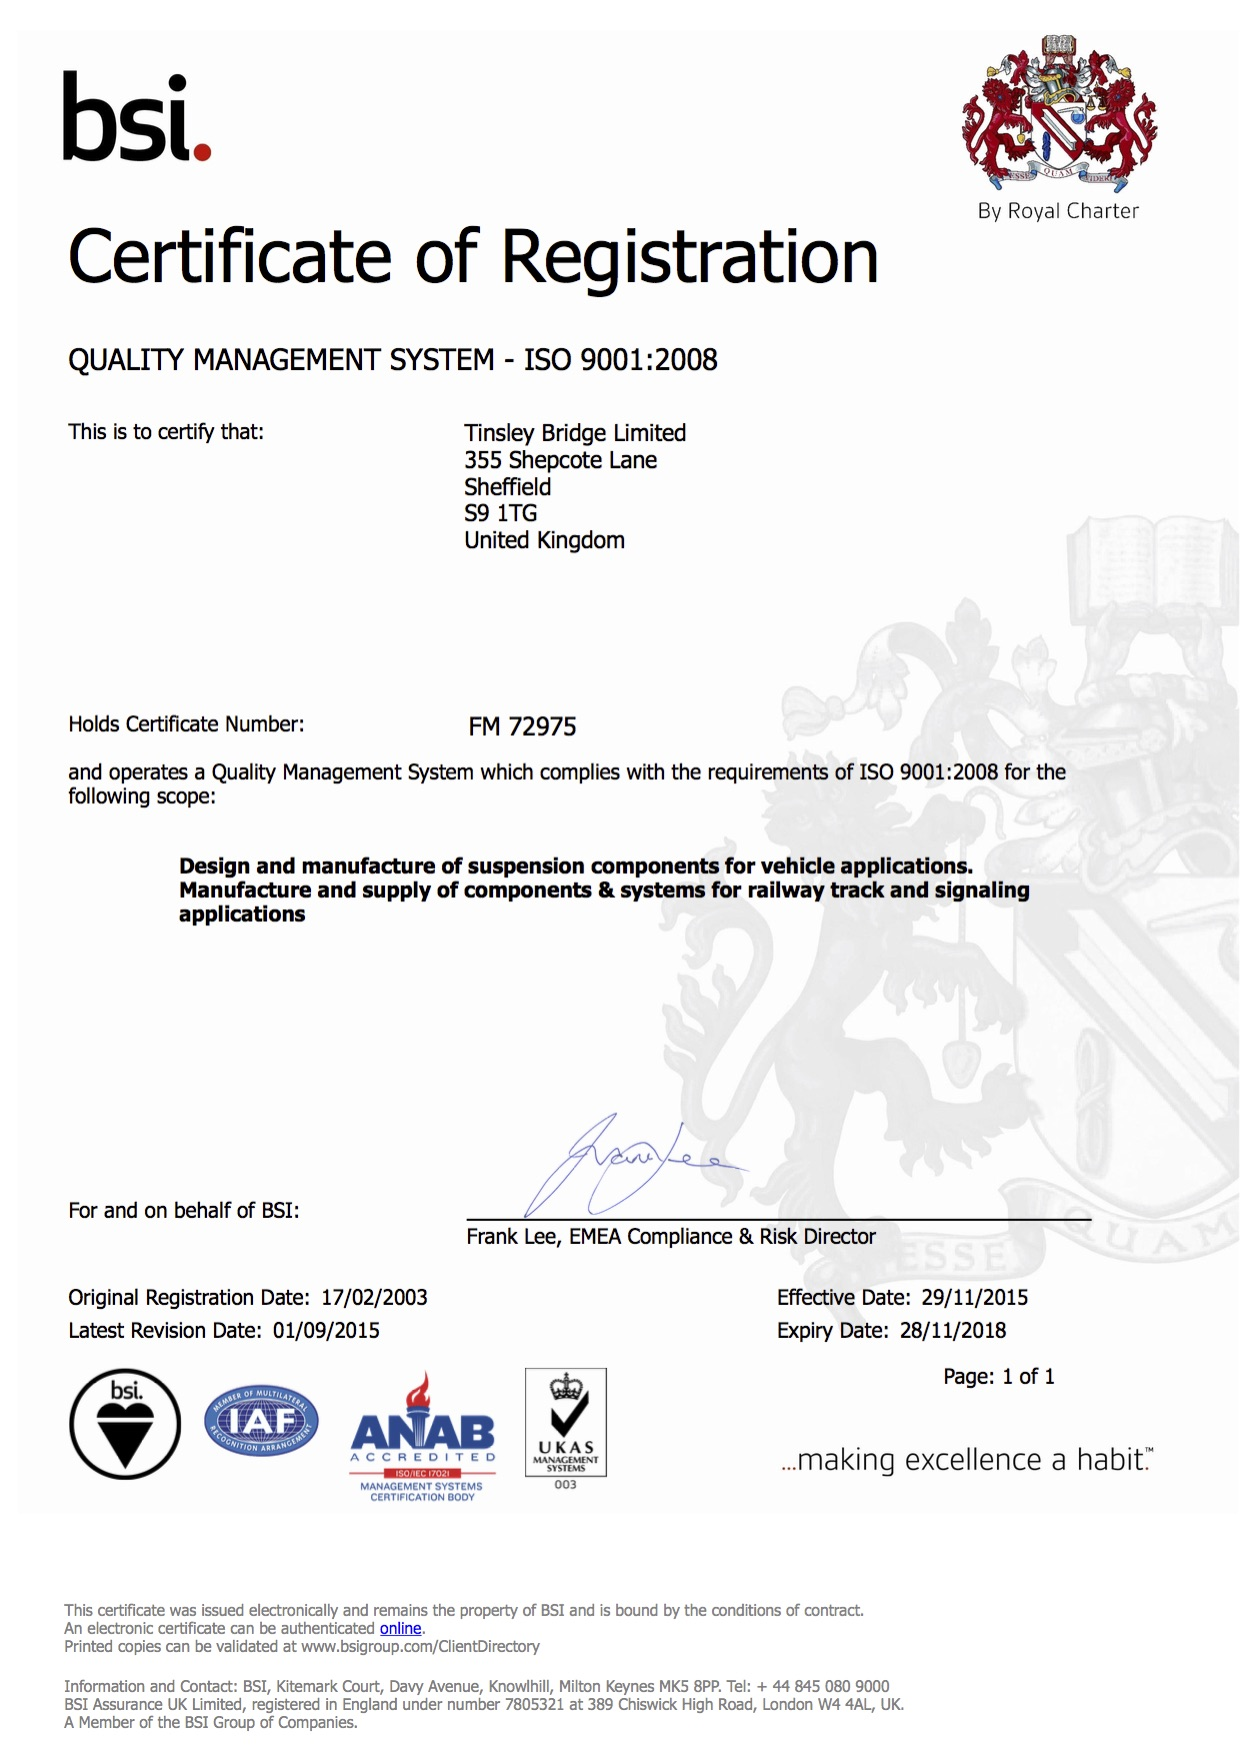 ISO 9001:2008 Certificate - Tinsley Bridge Limited